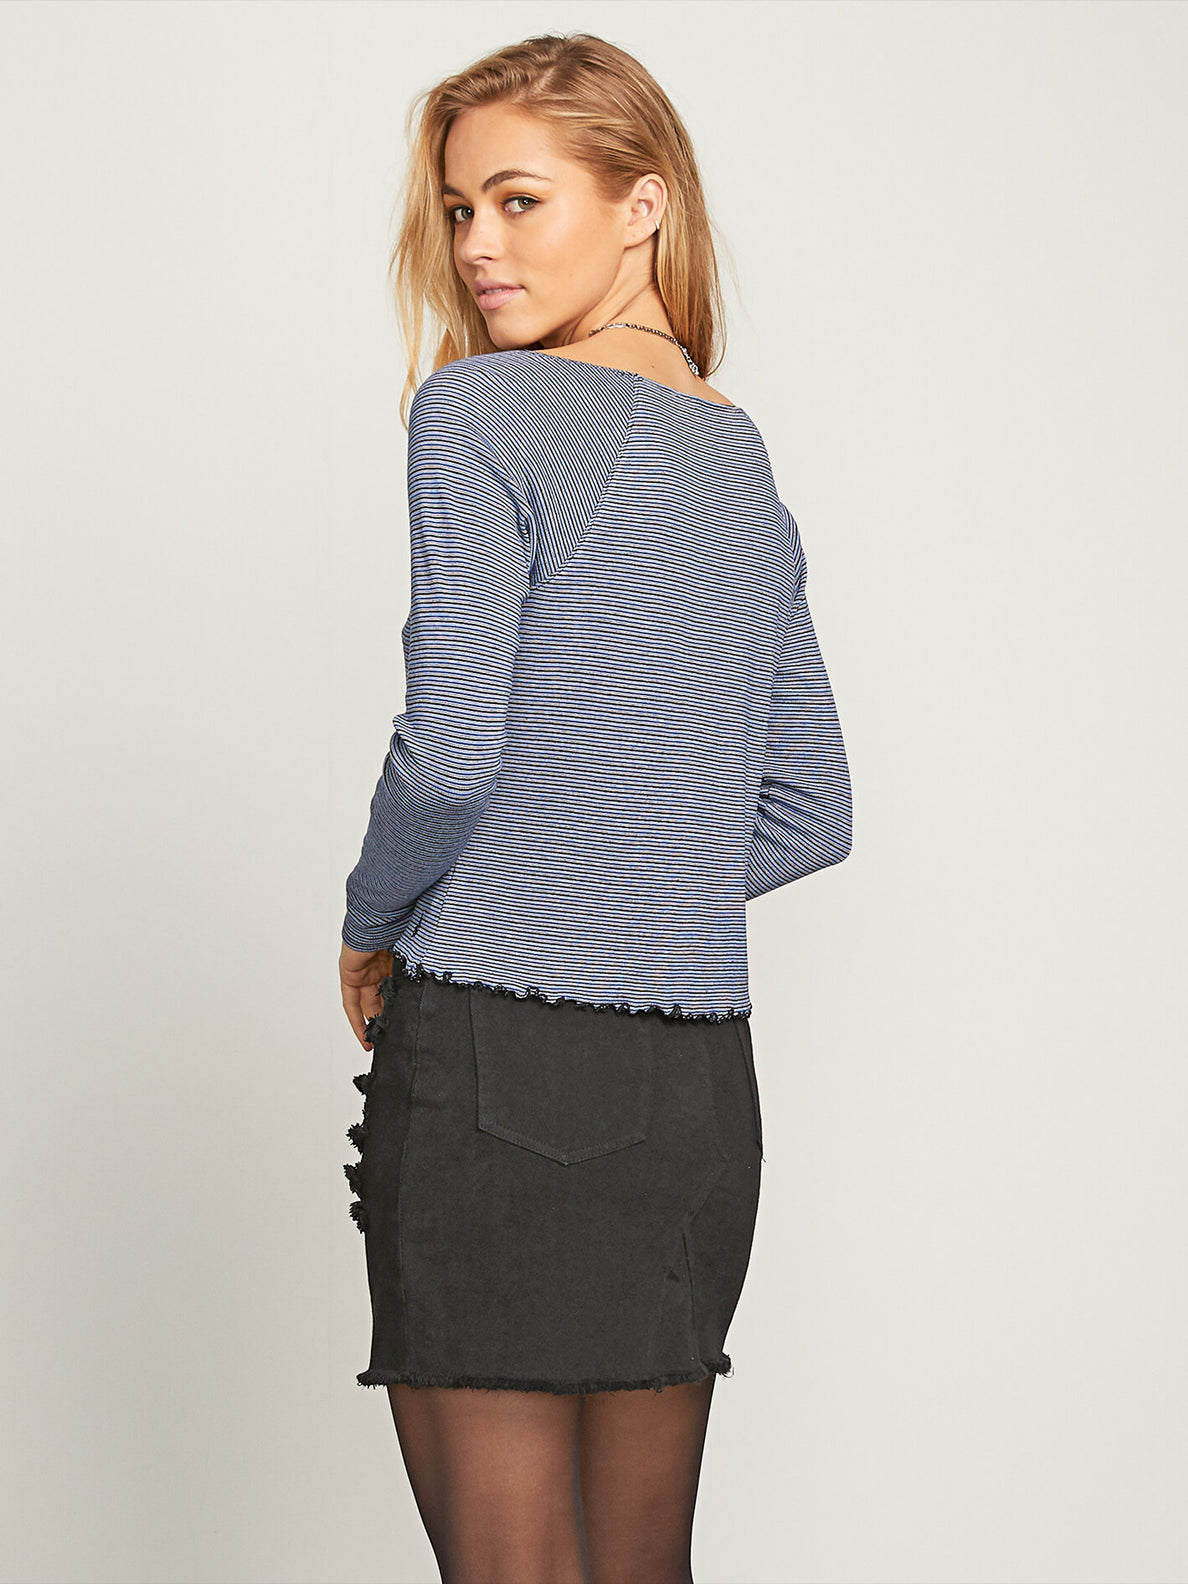 Way Femme Long Sleeve Tee In Black Combo, Back View